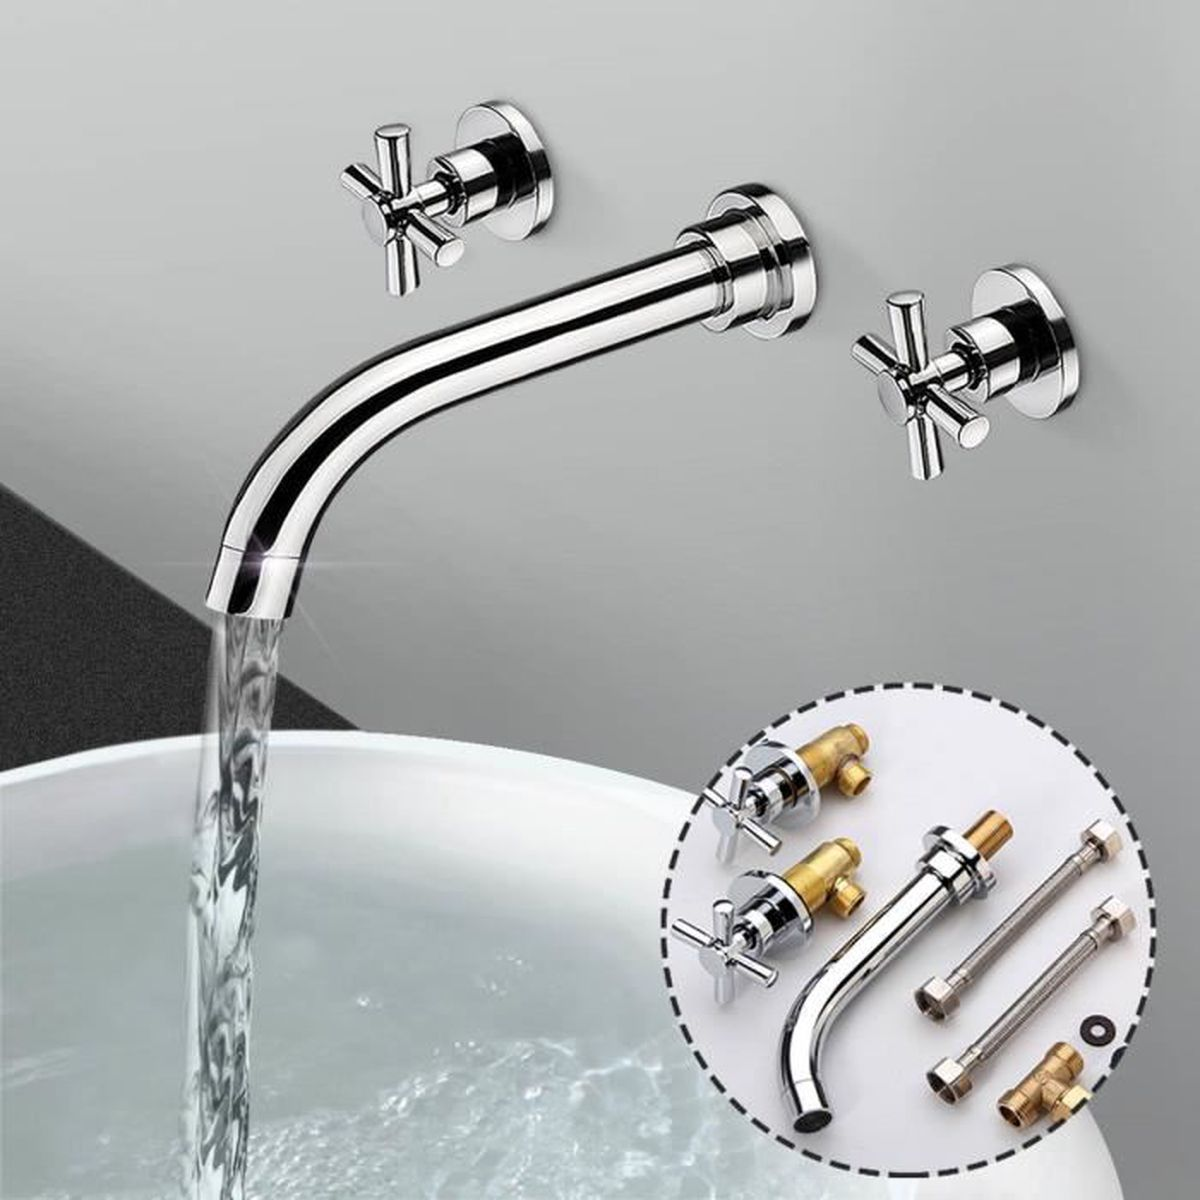 3 trous mural robinet mitigeur lavabo laiton mixer tap. Black Bedroom Furniture Sets. Home Design Ideas